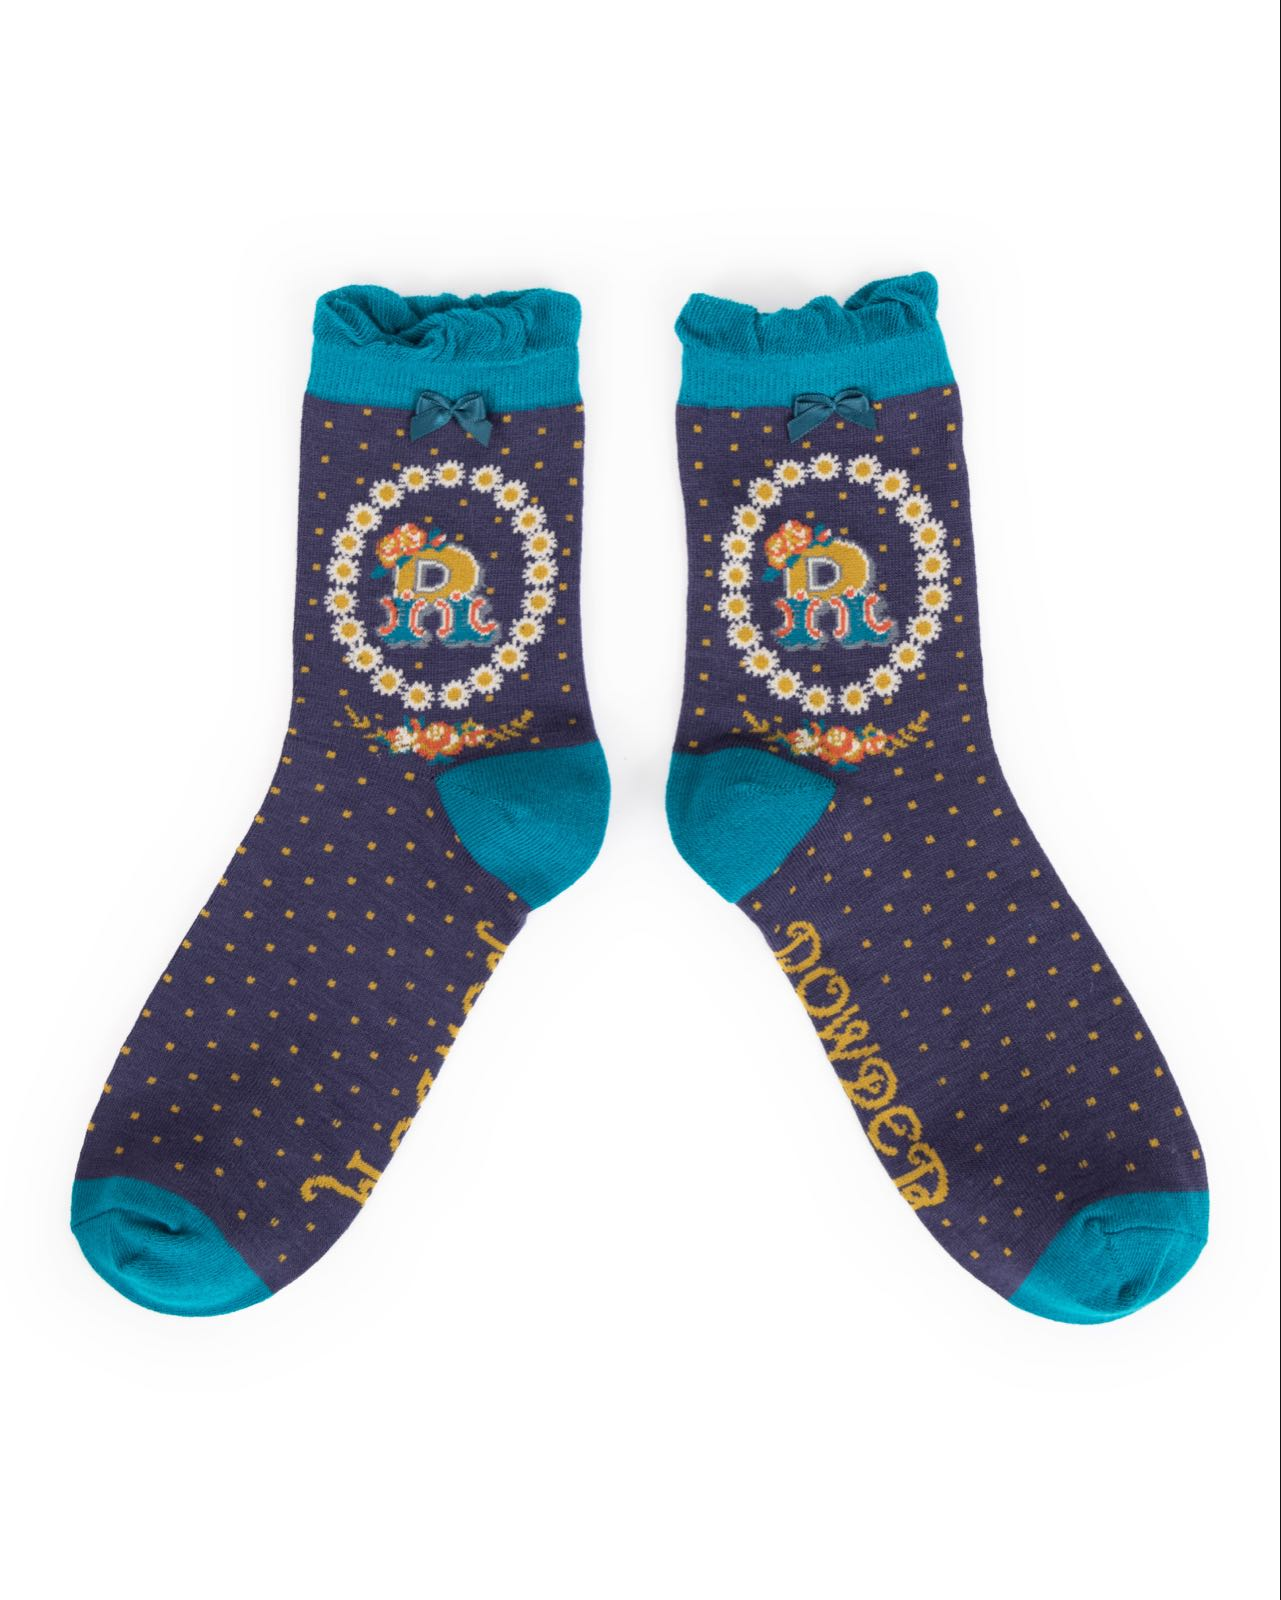 Powder Alphabet socks R (product may differ from item shown in the photo)